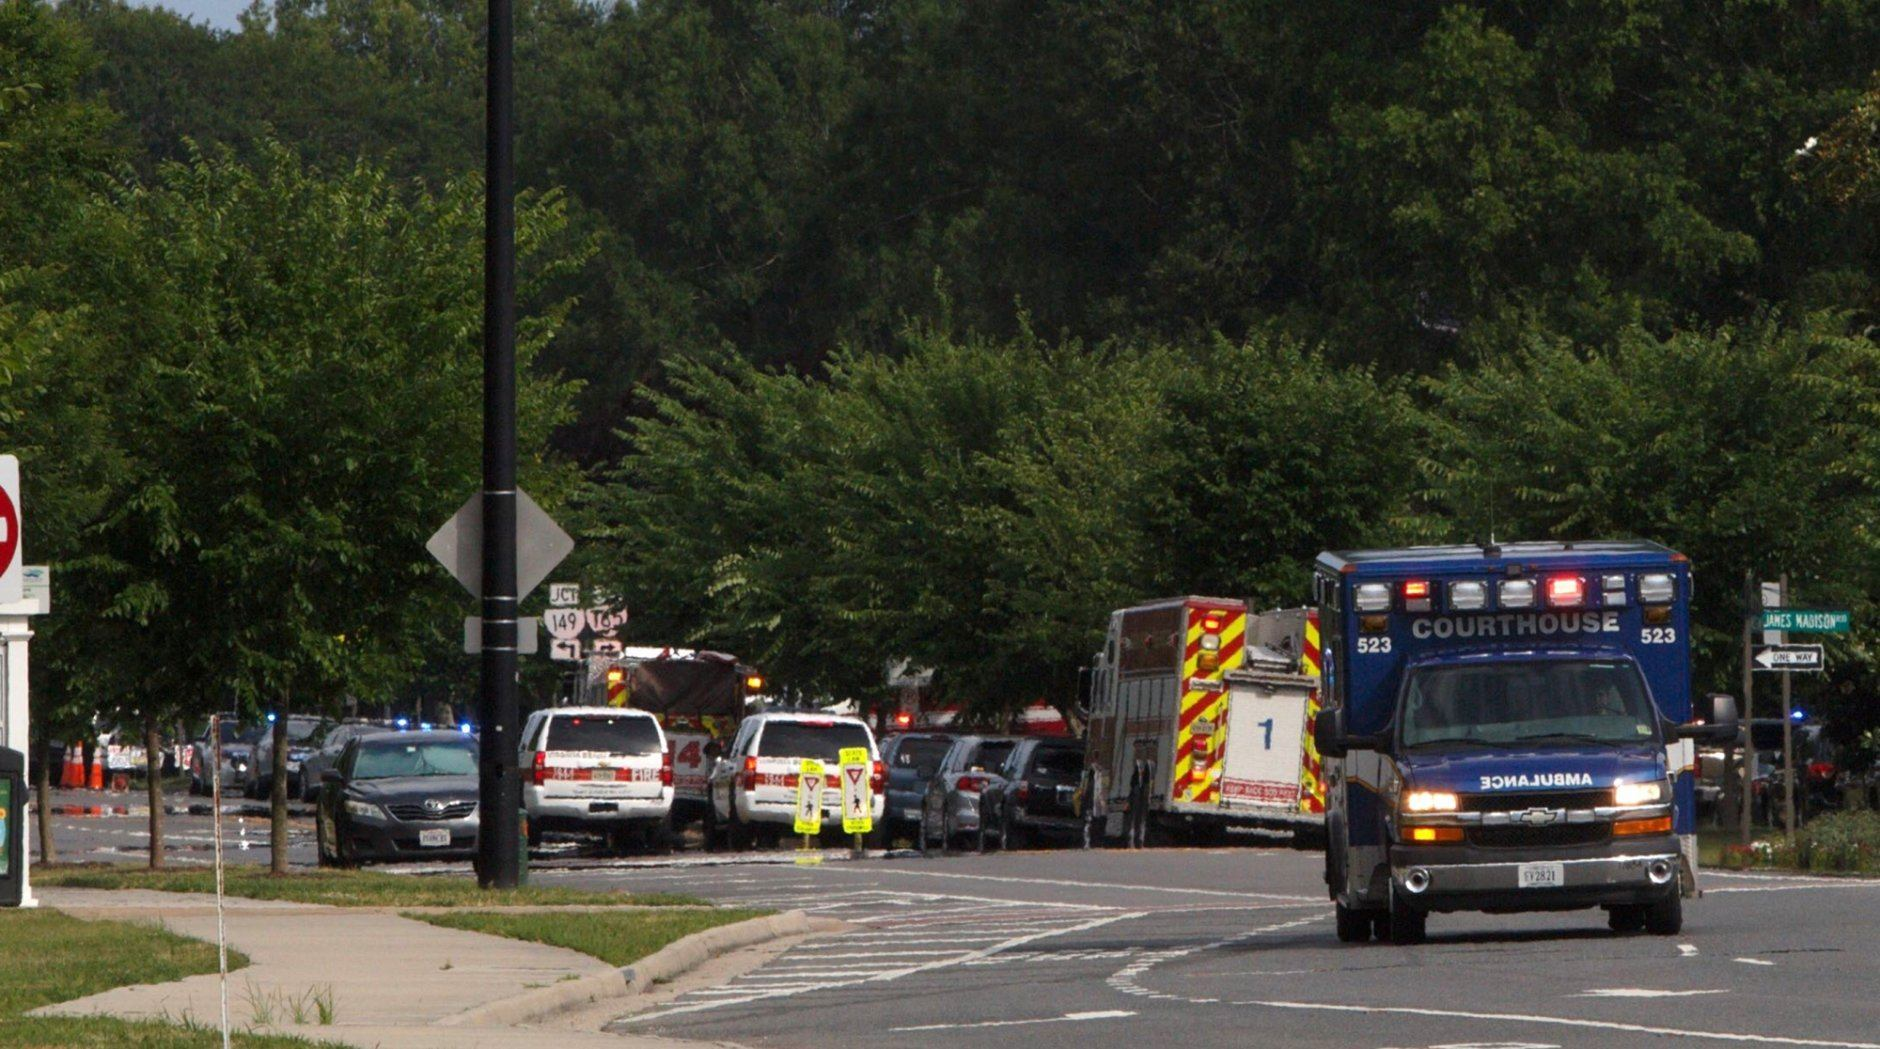 Emergency vehicle are seen near the intersection of Princess Anne Road and Nimmo Parkway following a shooting at the Virginia Beach Municipal Center on Friday, May 31, 2019 in Virginia Beach, Va. At least one shooter wounded multiple people at a municipal center in Virginia Beach on Friday, according to police, who said a suspect has been taken into custody. (Kaitlin McKeown/The Virginian-Pilot via AP)